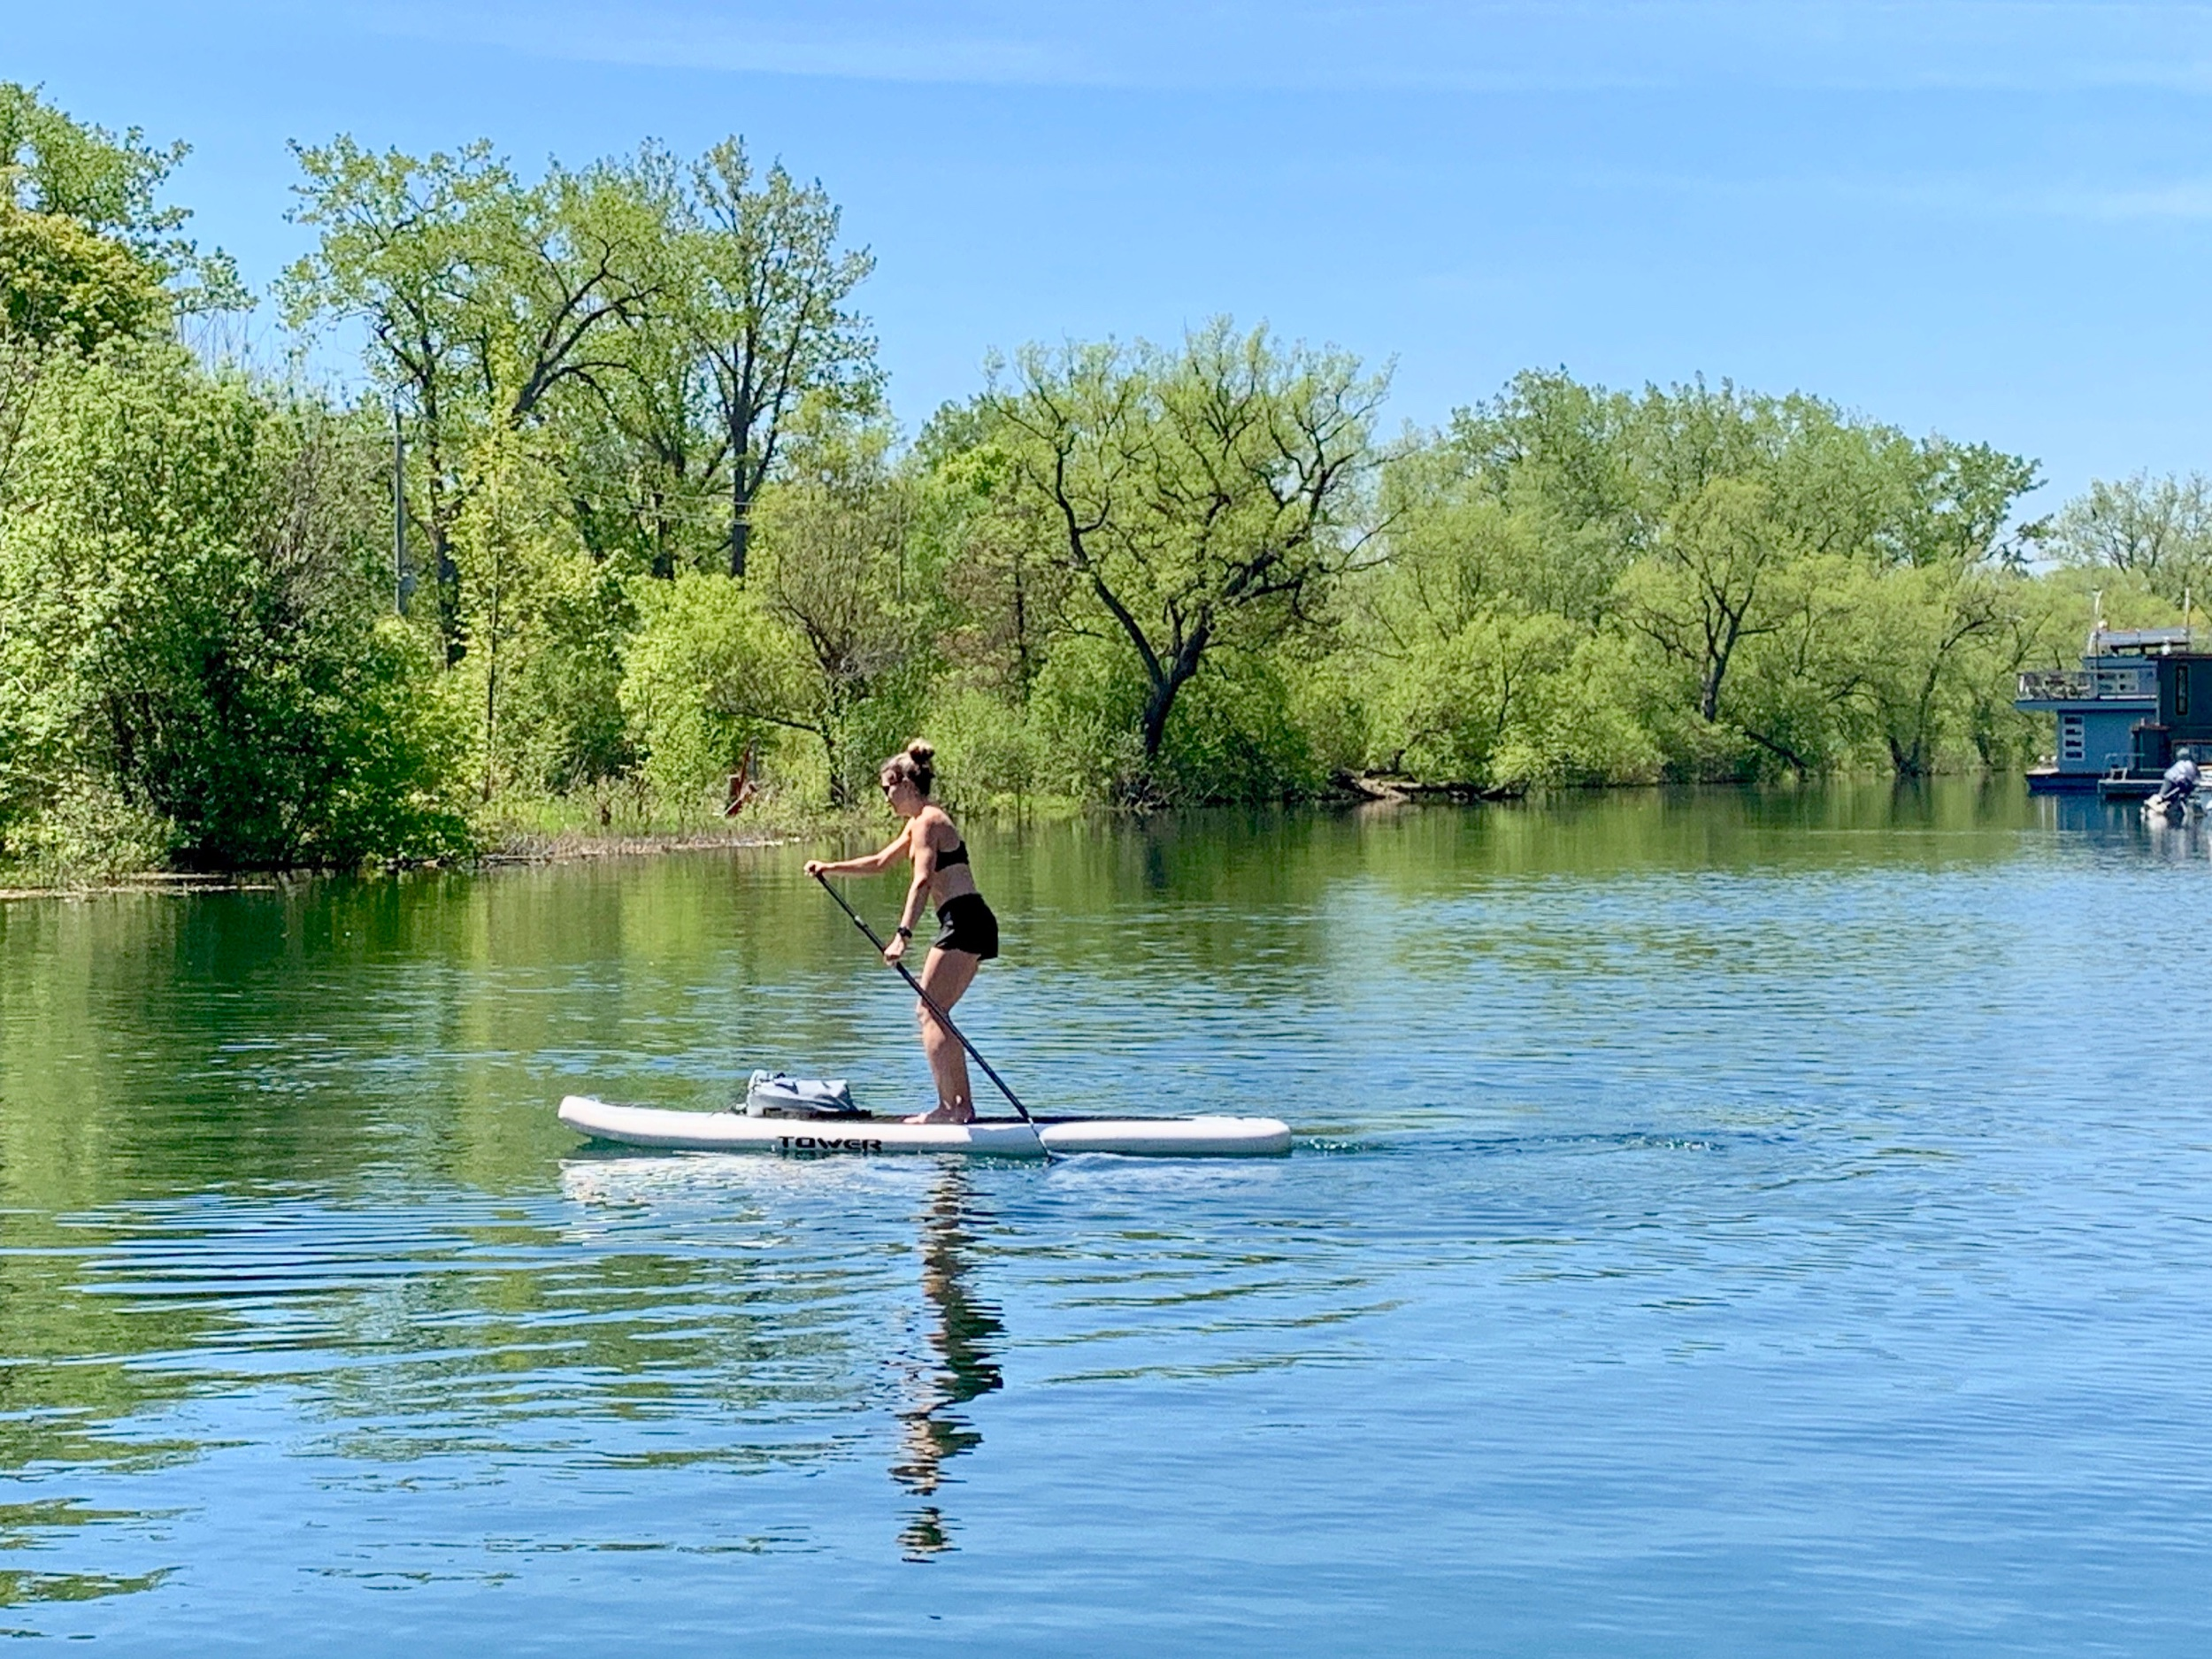 Paddling through the Toronto Islands